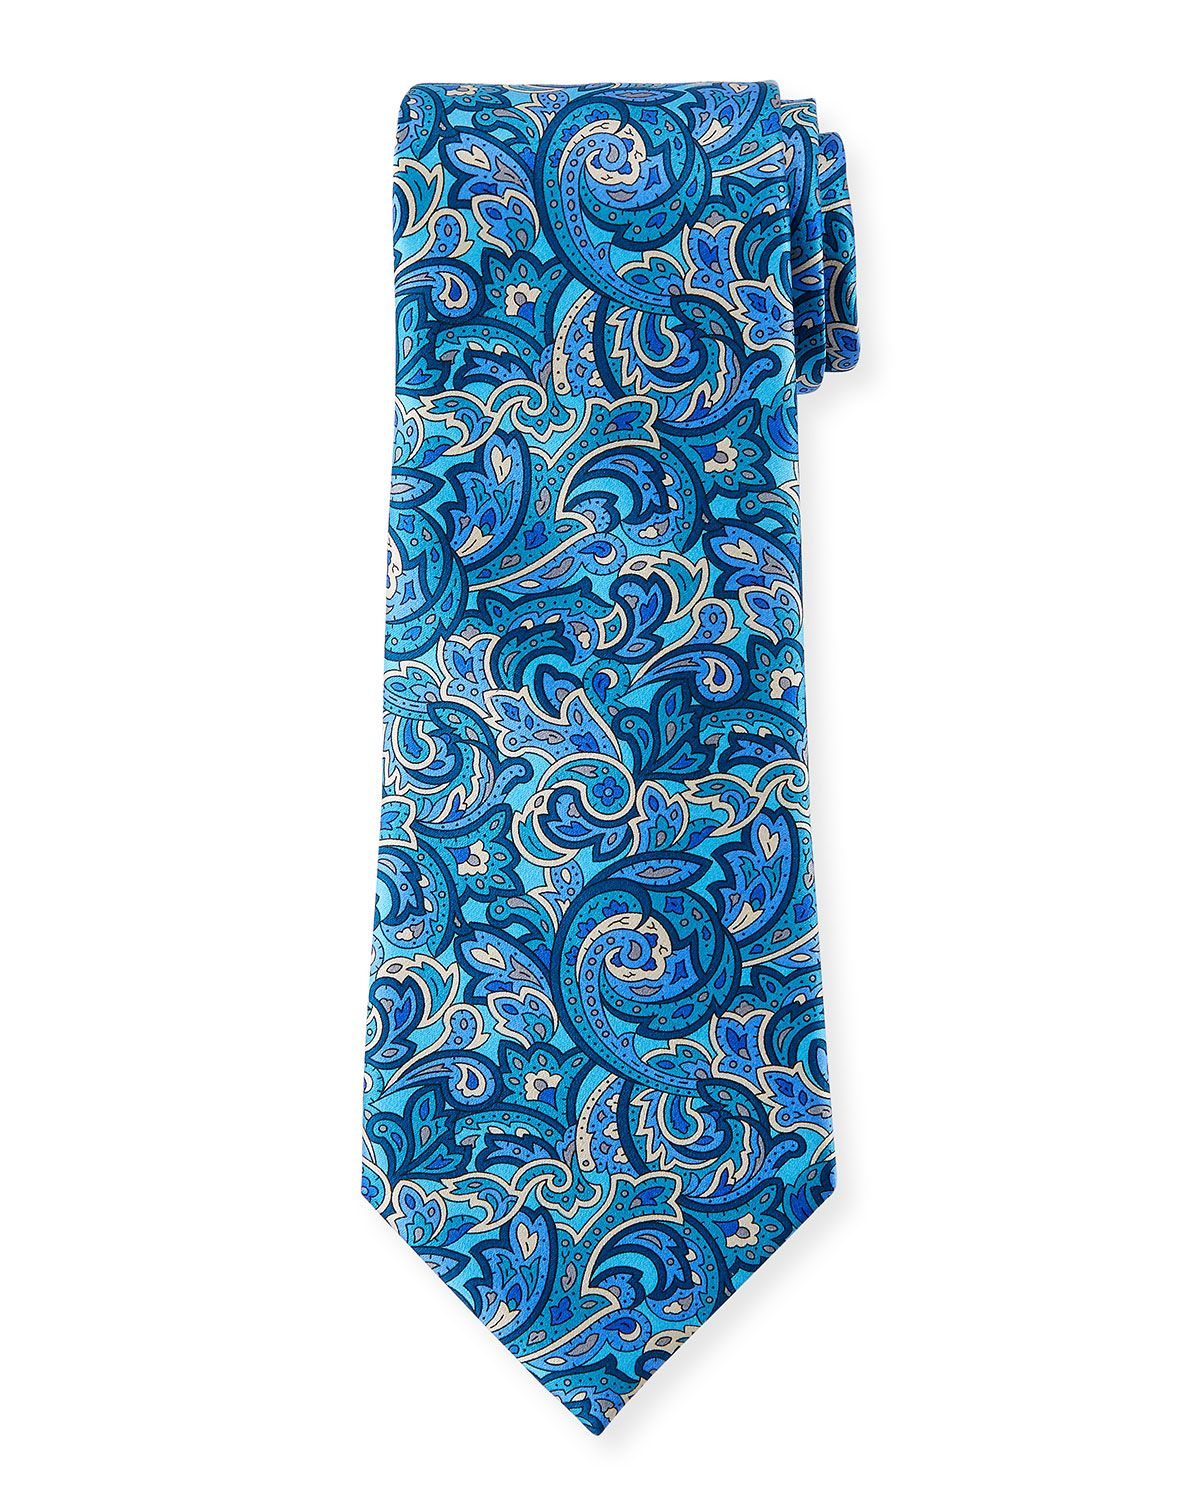 be350d32 ERMENEGILDO ZEGNA MEN'S MEDIUM-SCALE PAISLEY TIE ...